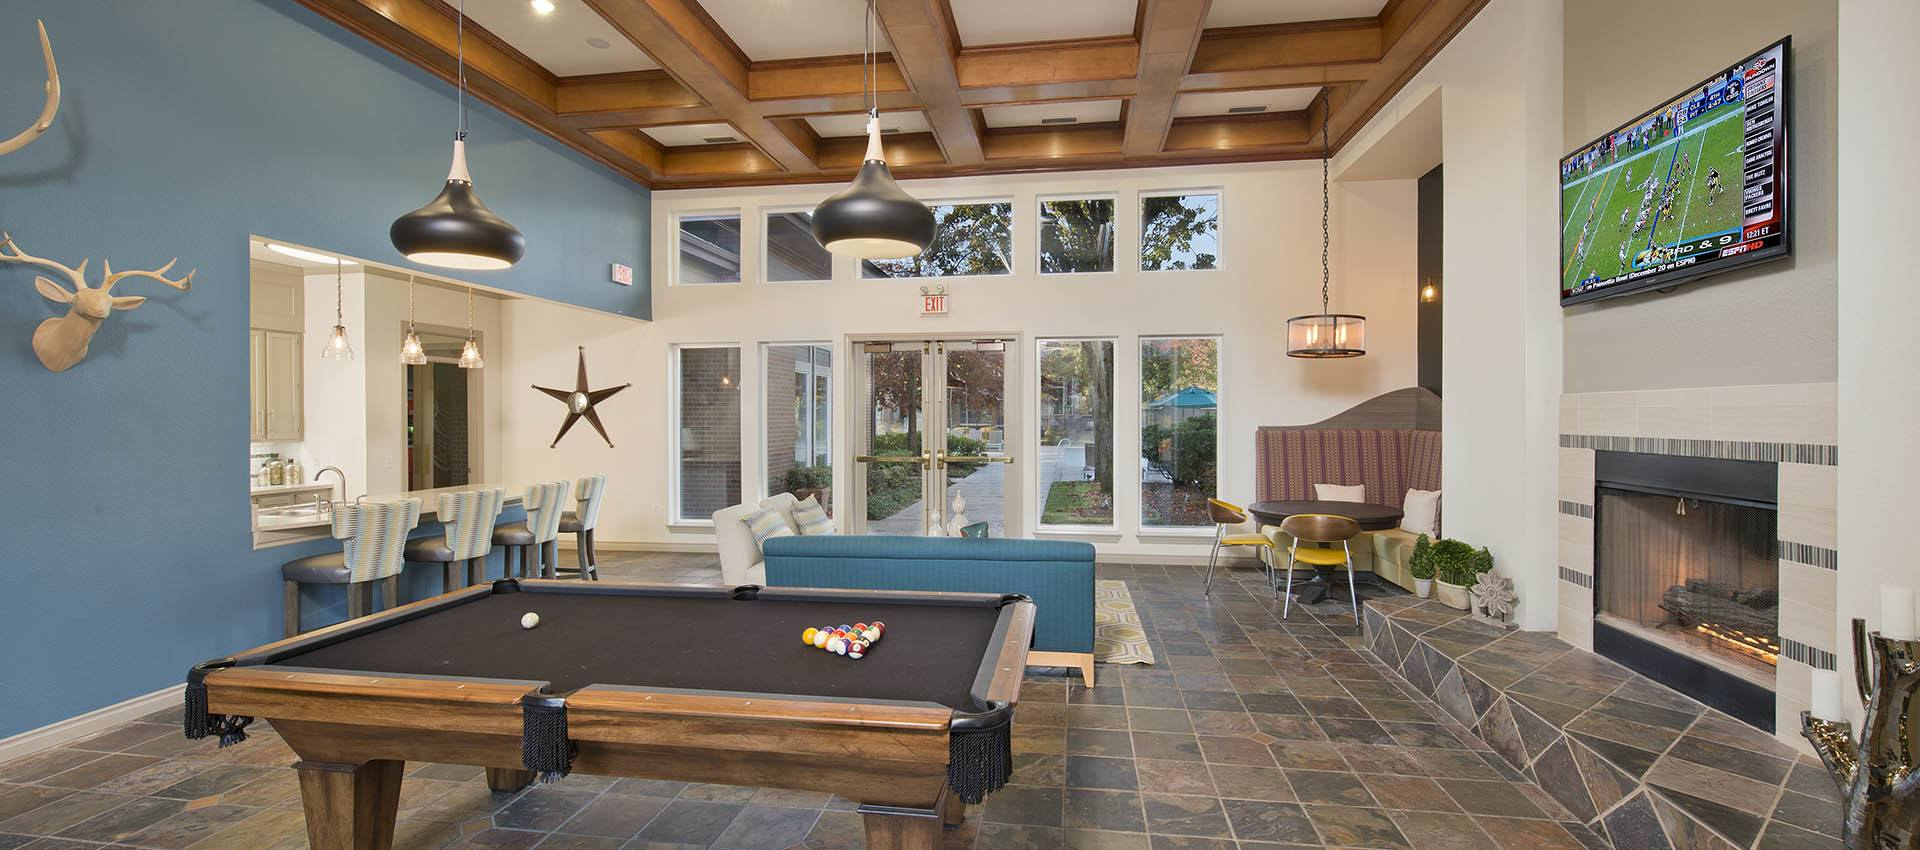 Pool table at Cortland Village Apartment Homes in Hillsboro, OR